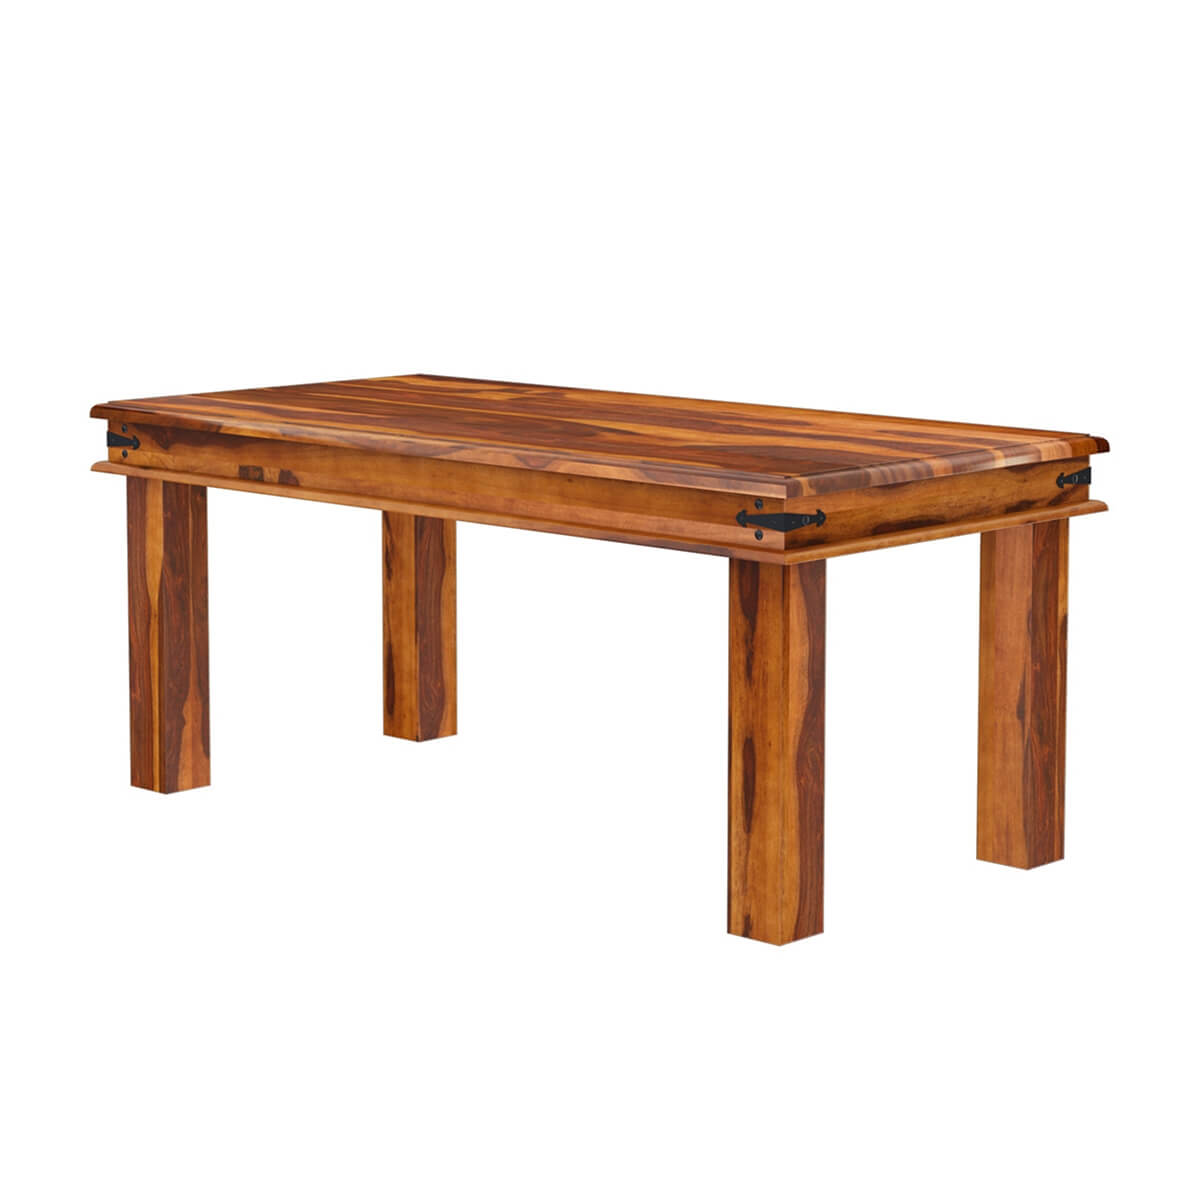 Philadelphia country classic oak 6 seater handmade dining for Handcrafted dining room tables